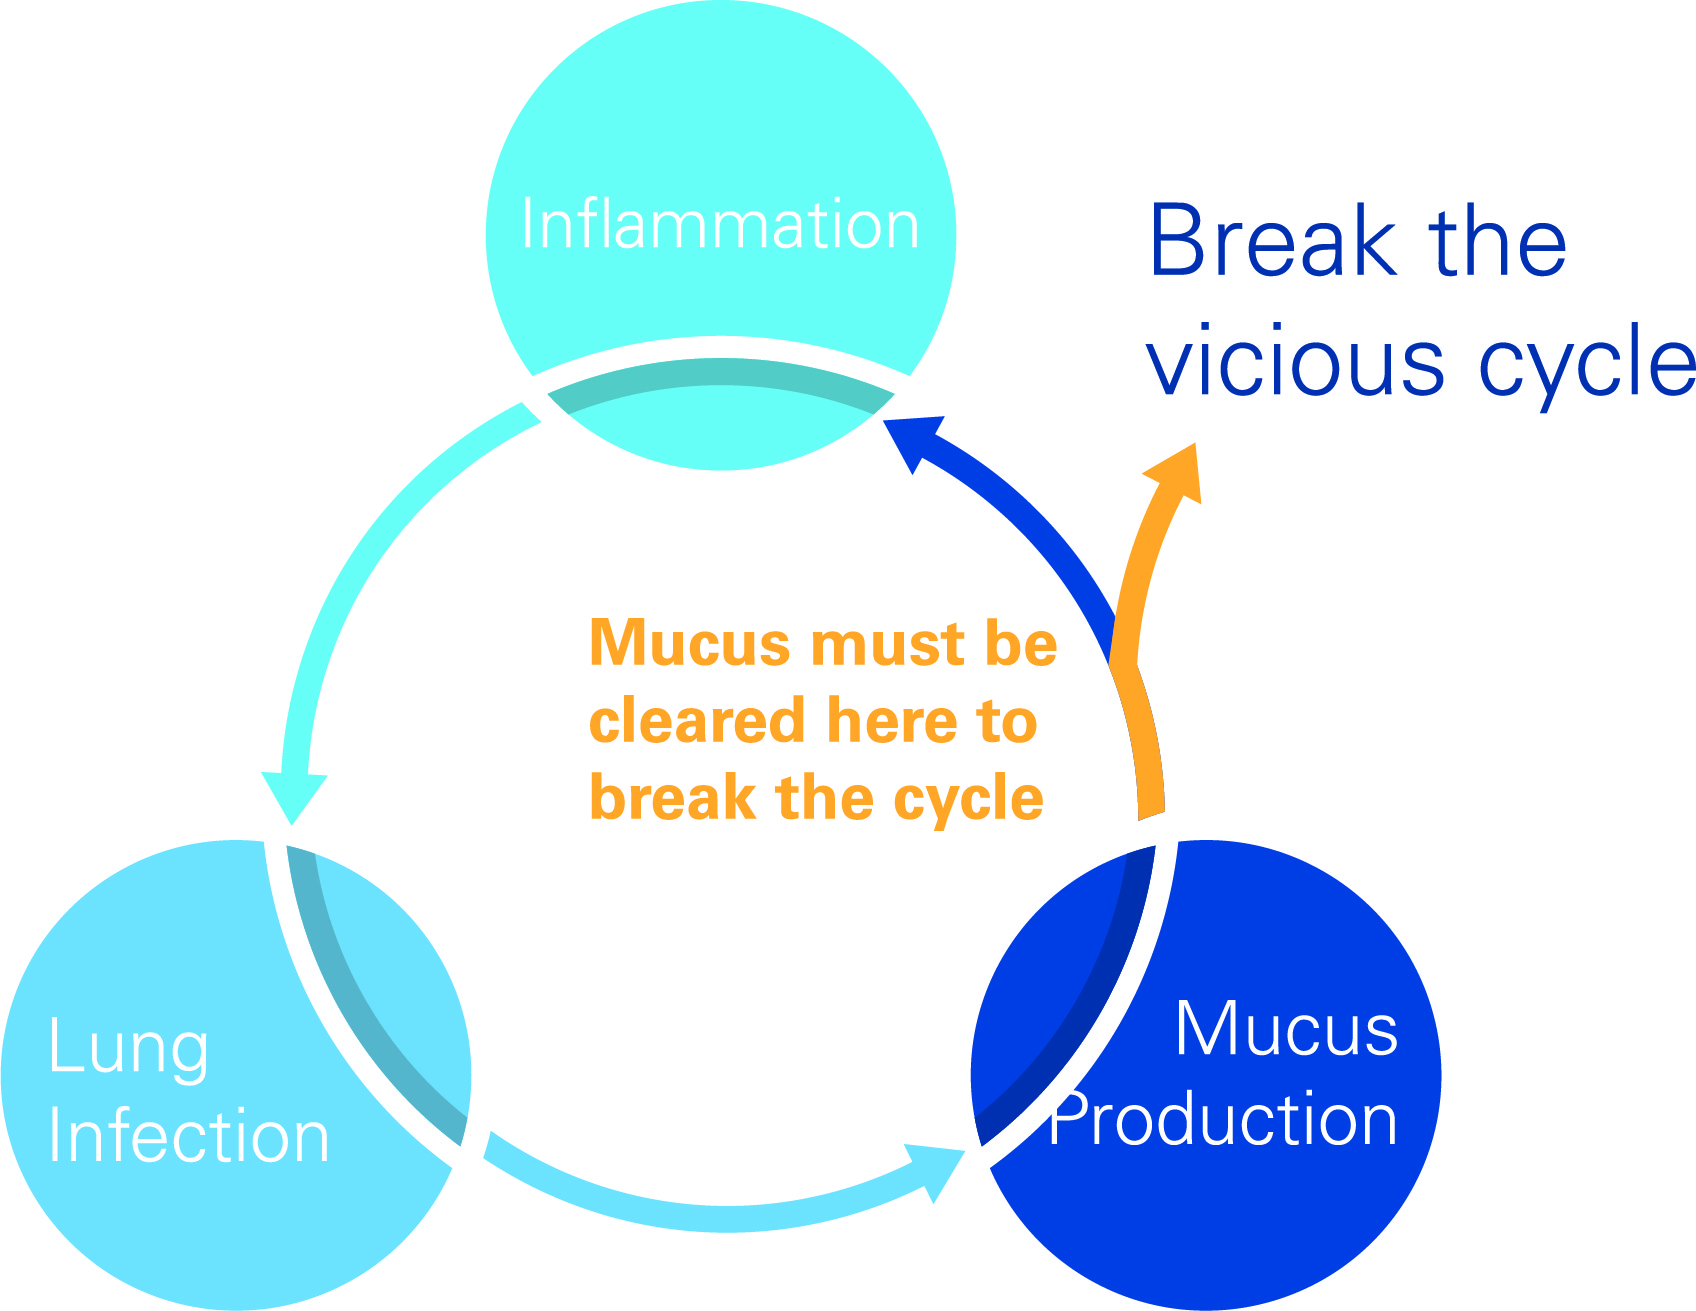 Vicious Cycle Image